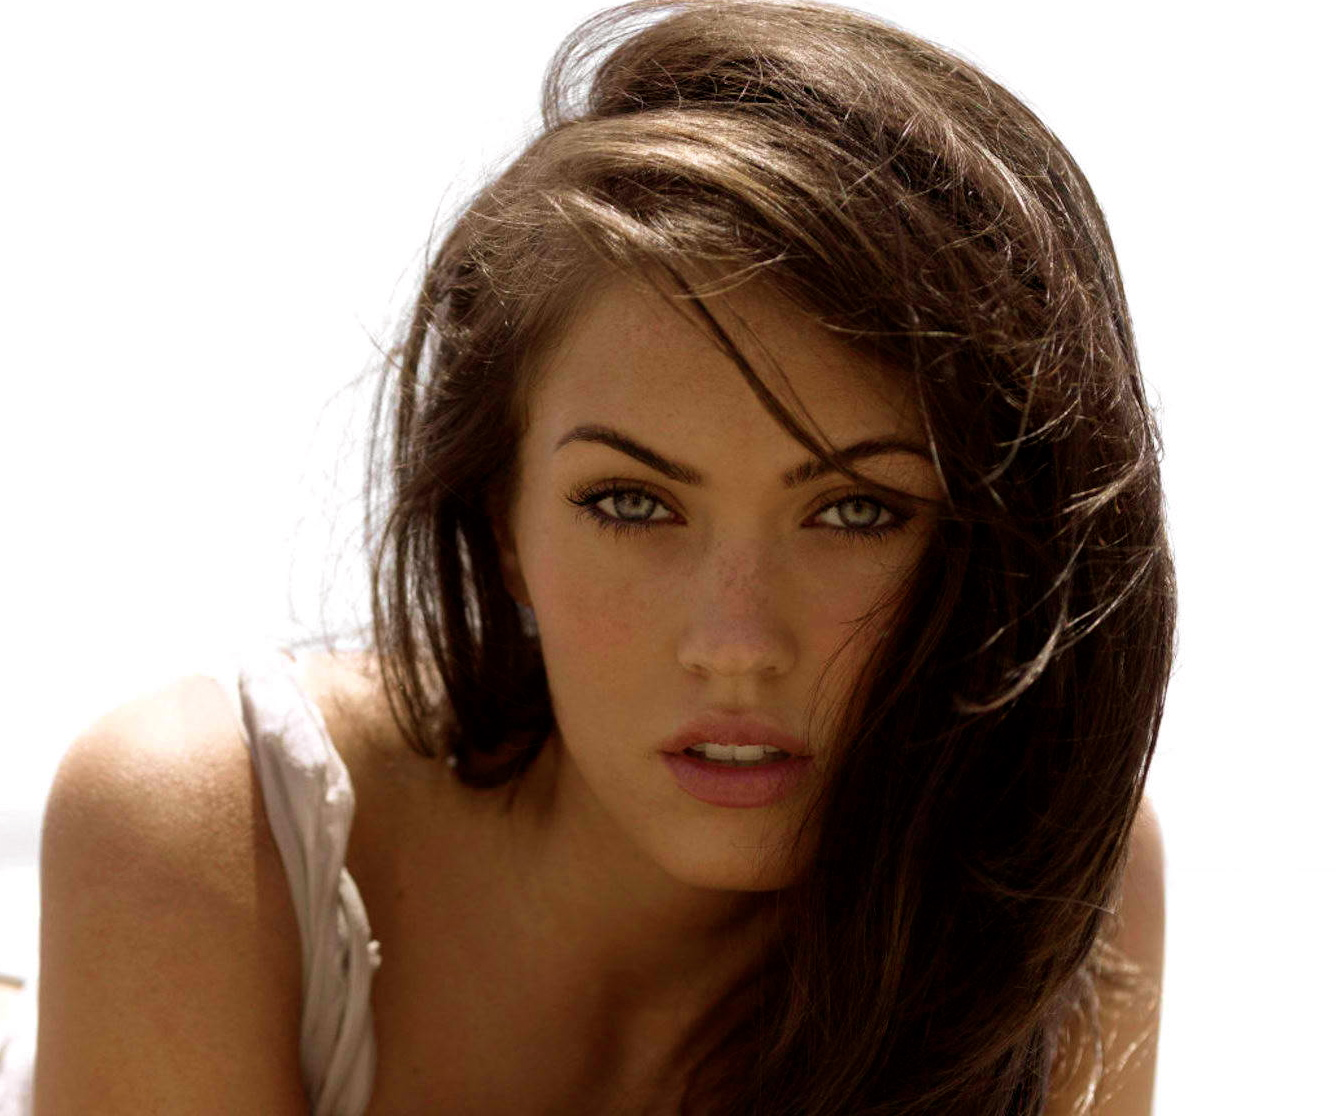 Megan-Fox-Transformers-4-Michael-Bay_137